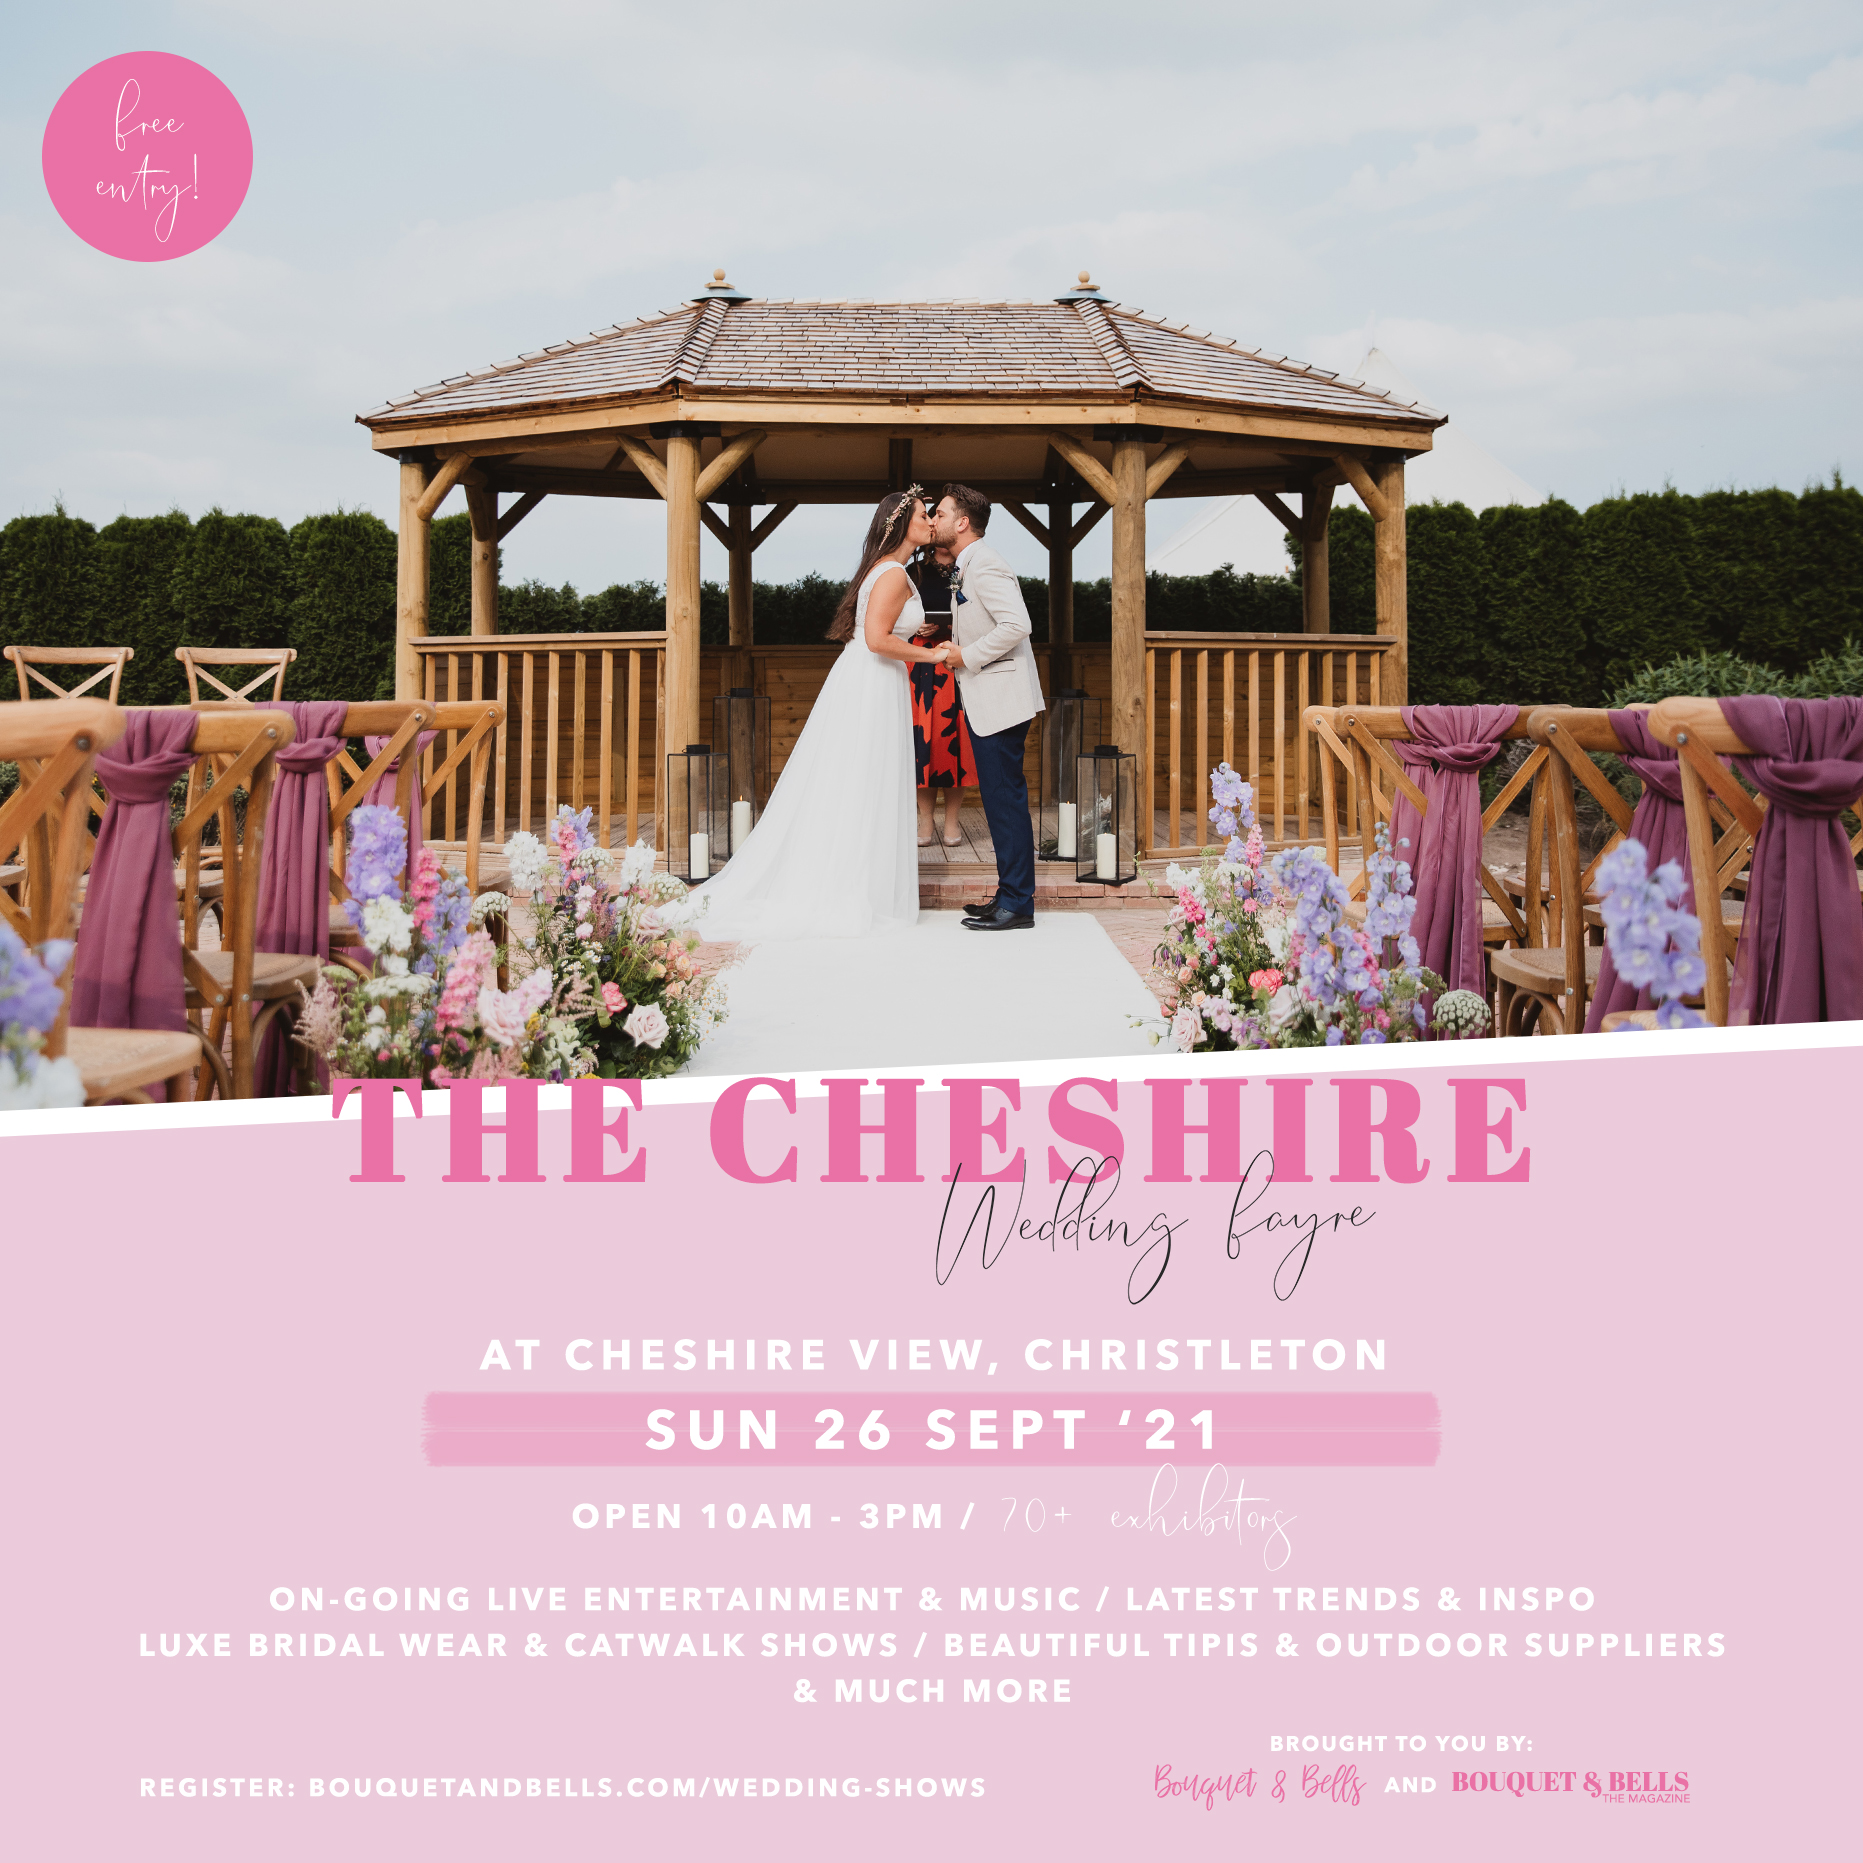 the-cheshire-wedding-fayre-cheshire-view-bouquet-and-bells